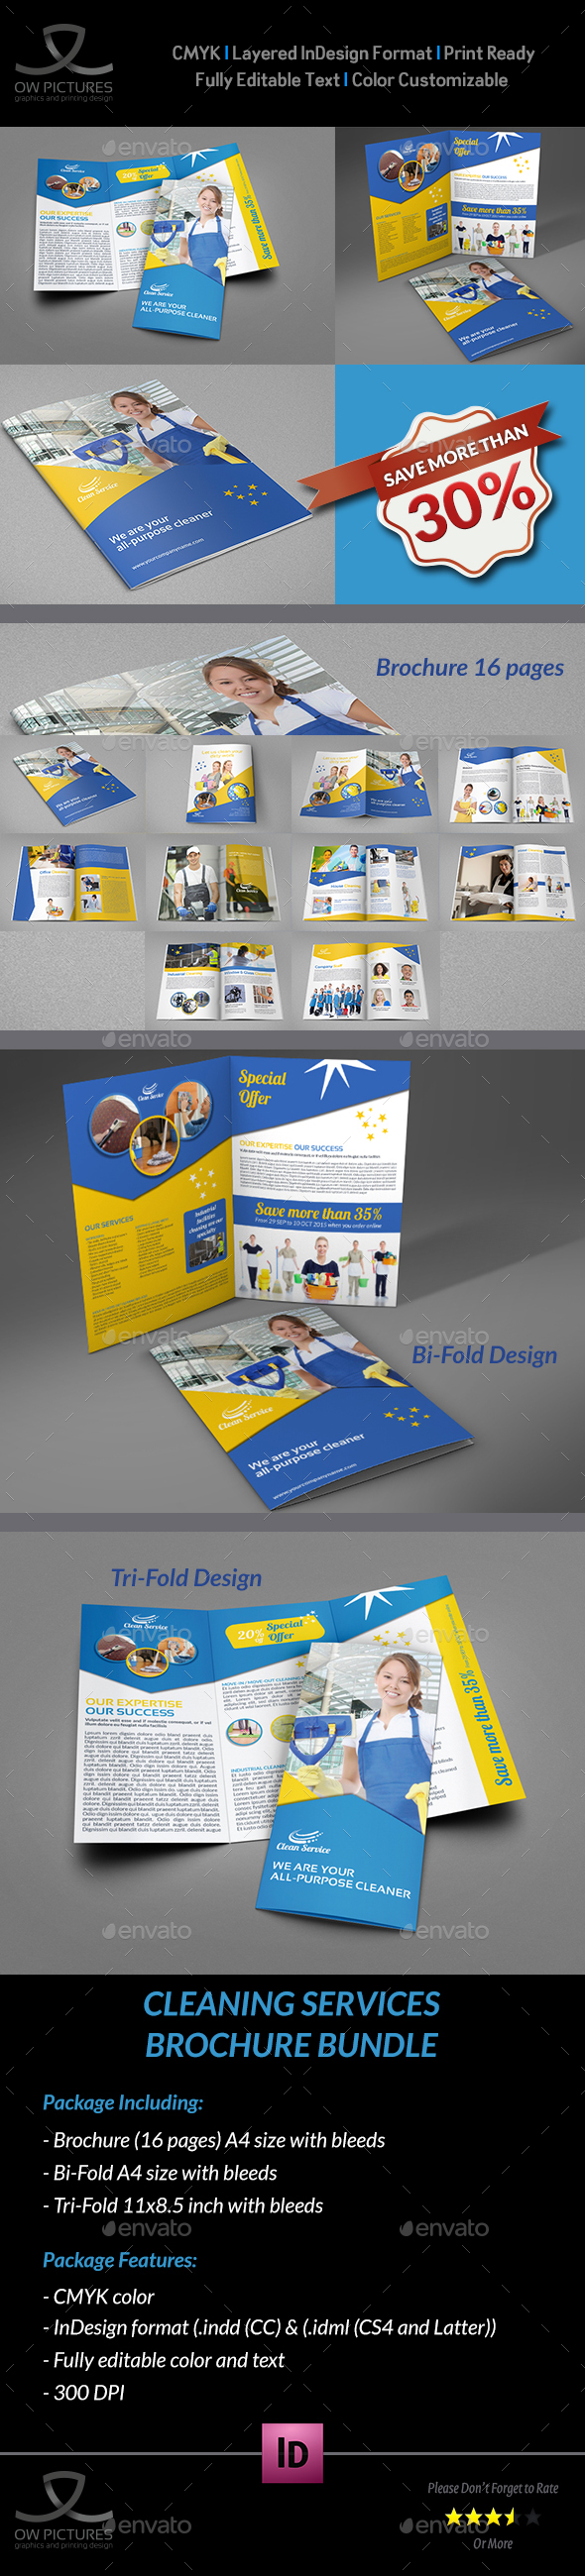 Cleaning Services Brochure Bundle Template - Brochures Print Templates